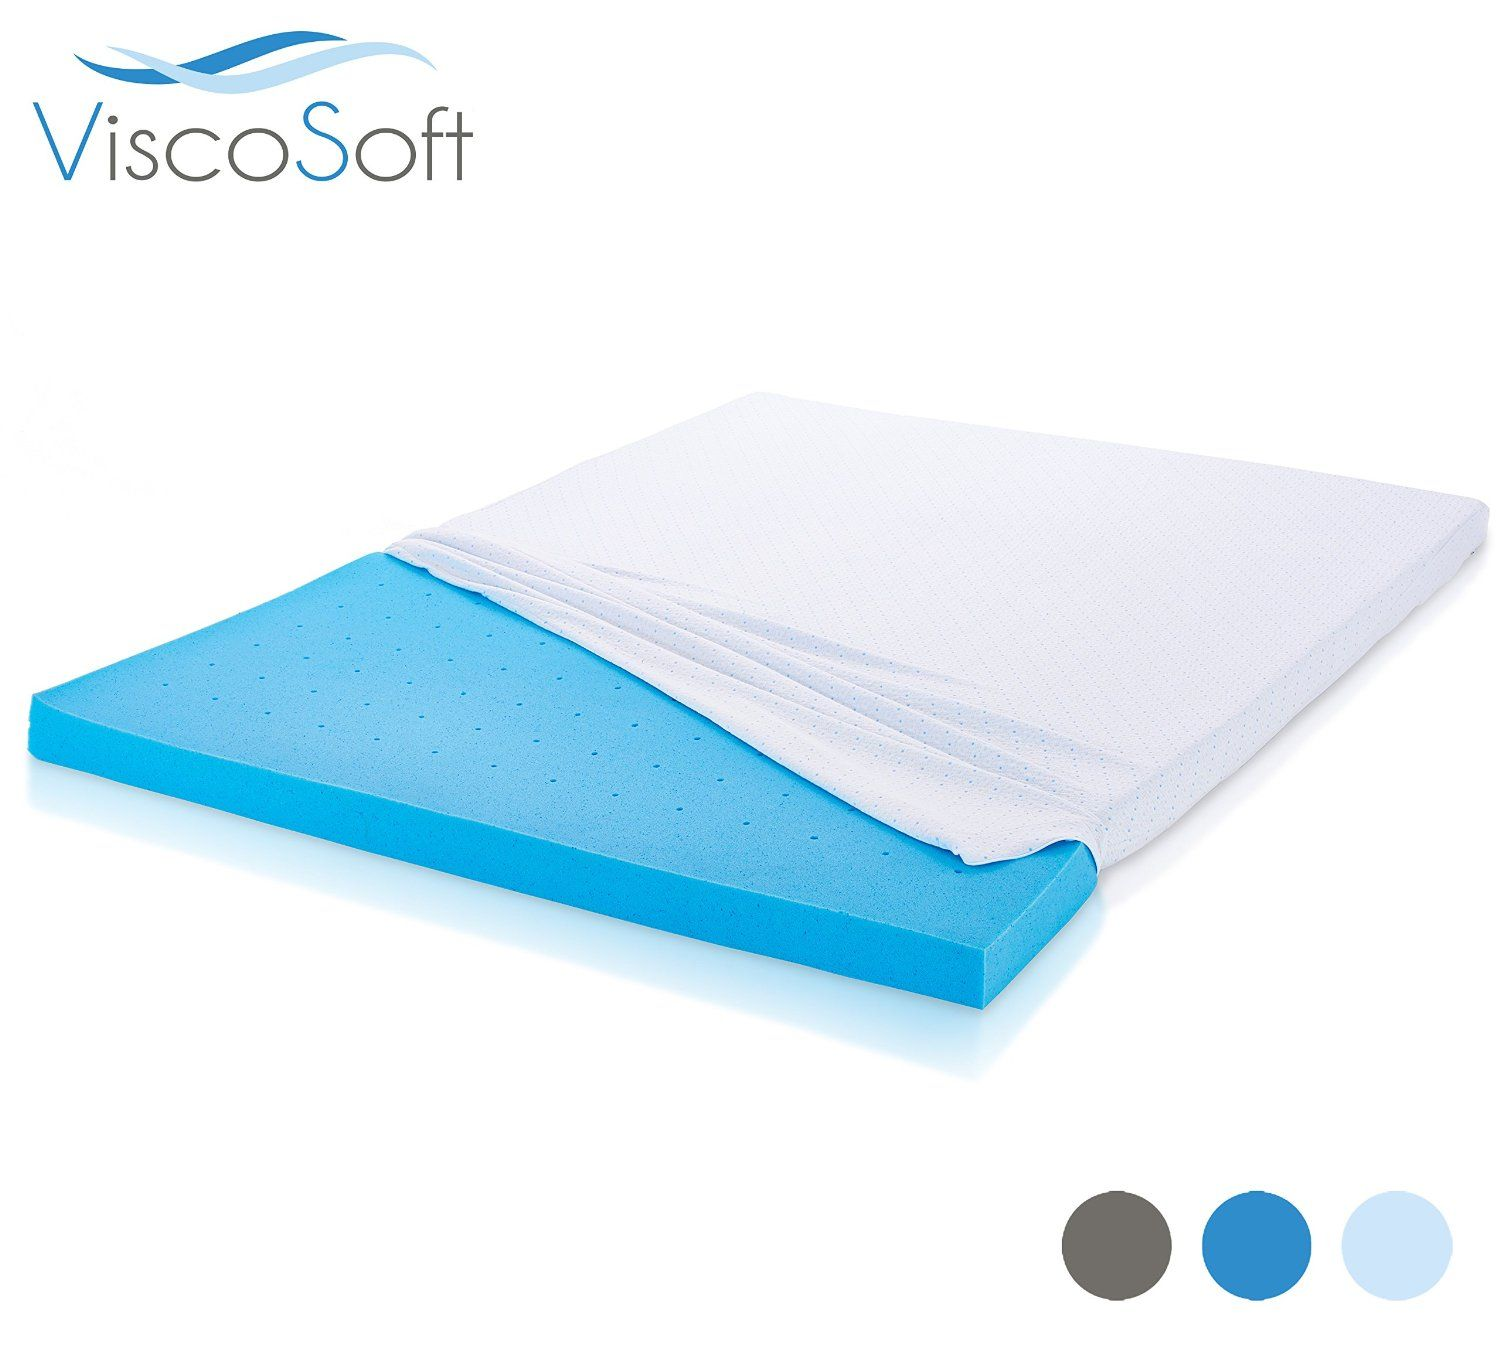 Amazon.com: ViscoSoft Cooling Gel-Infused Memory Foam Mattress Topper 3-INCH